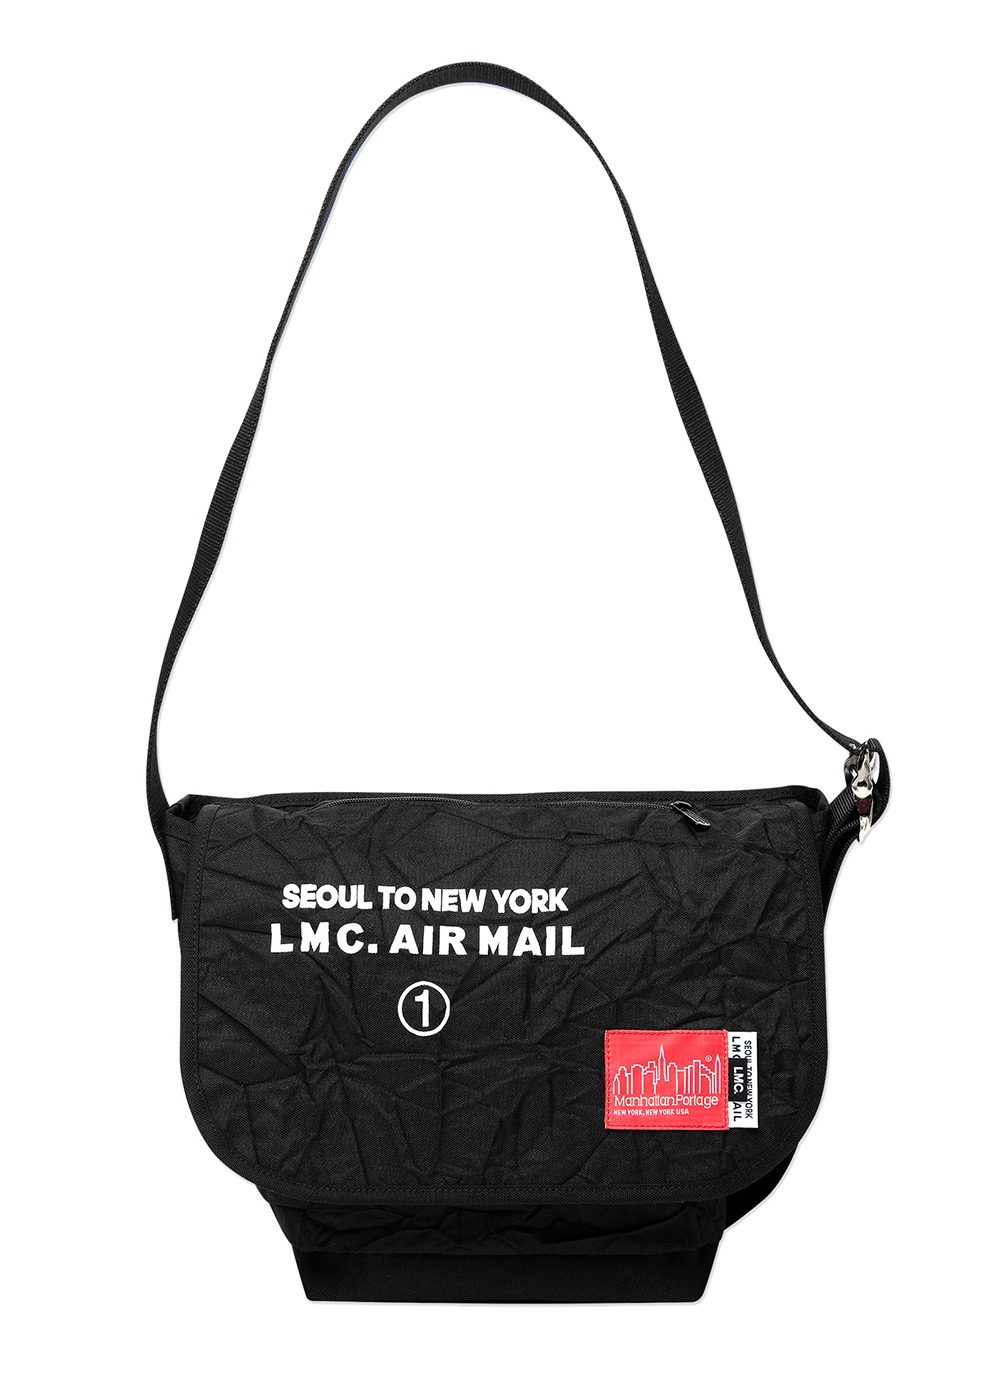 LMC X MANHATTAN PORTAGE VINTAGE MESSENGER BAG (SM) black